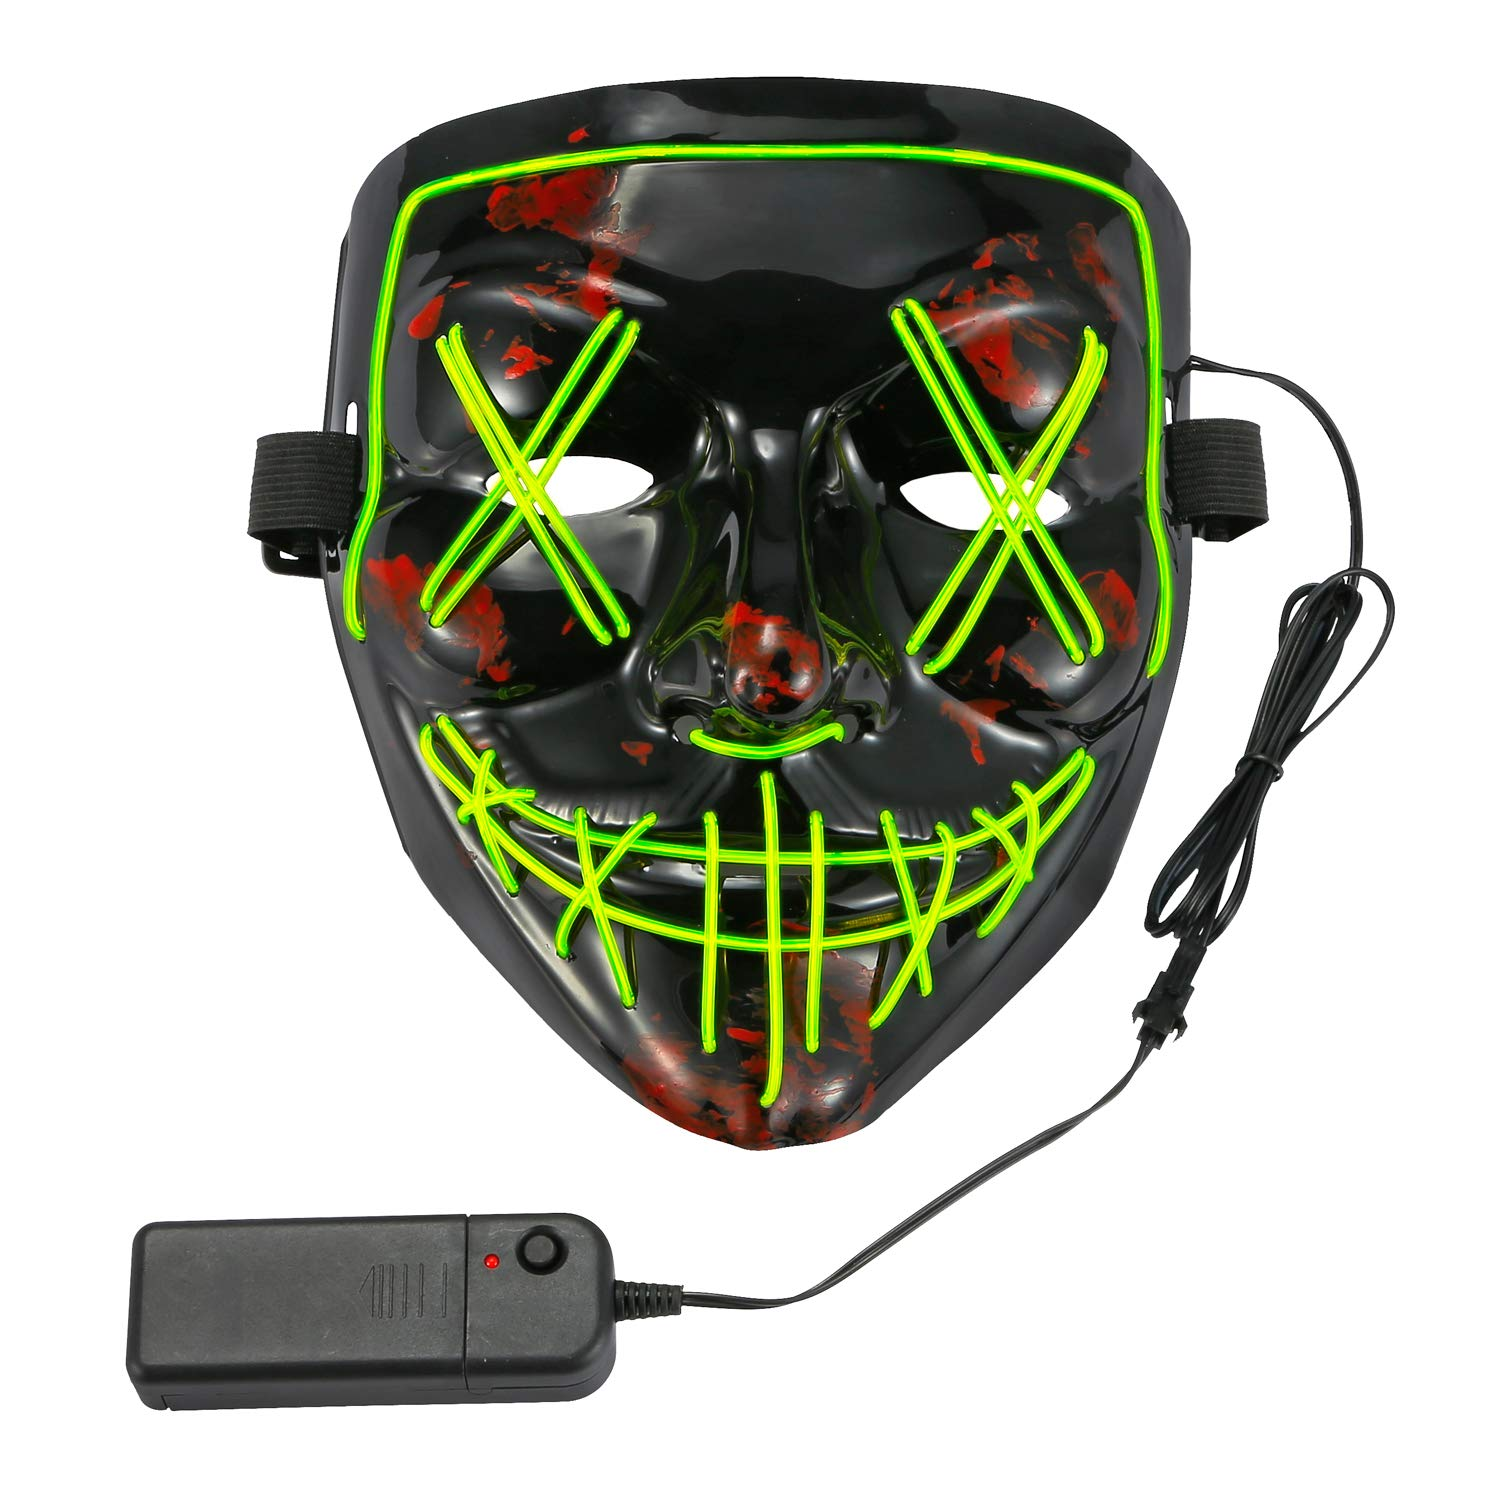 CyanCloud Halloween Mask LED Light Up Scary Glowing Mask EL Wire Light up for Festival Cosplay Party Halloween Costume(Green)... by CyanCloud